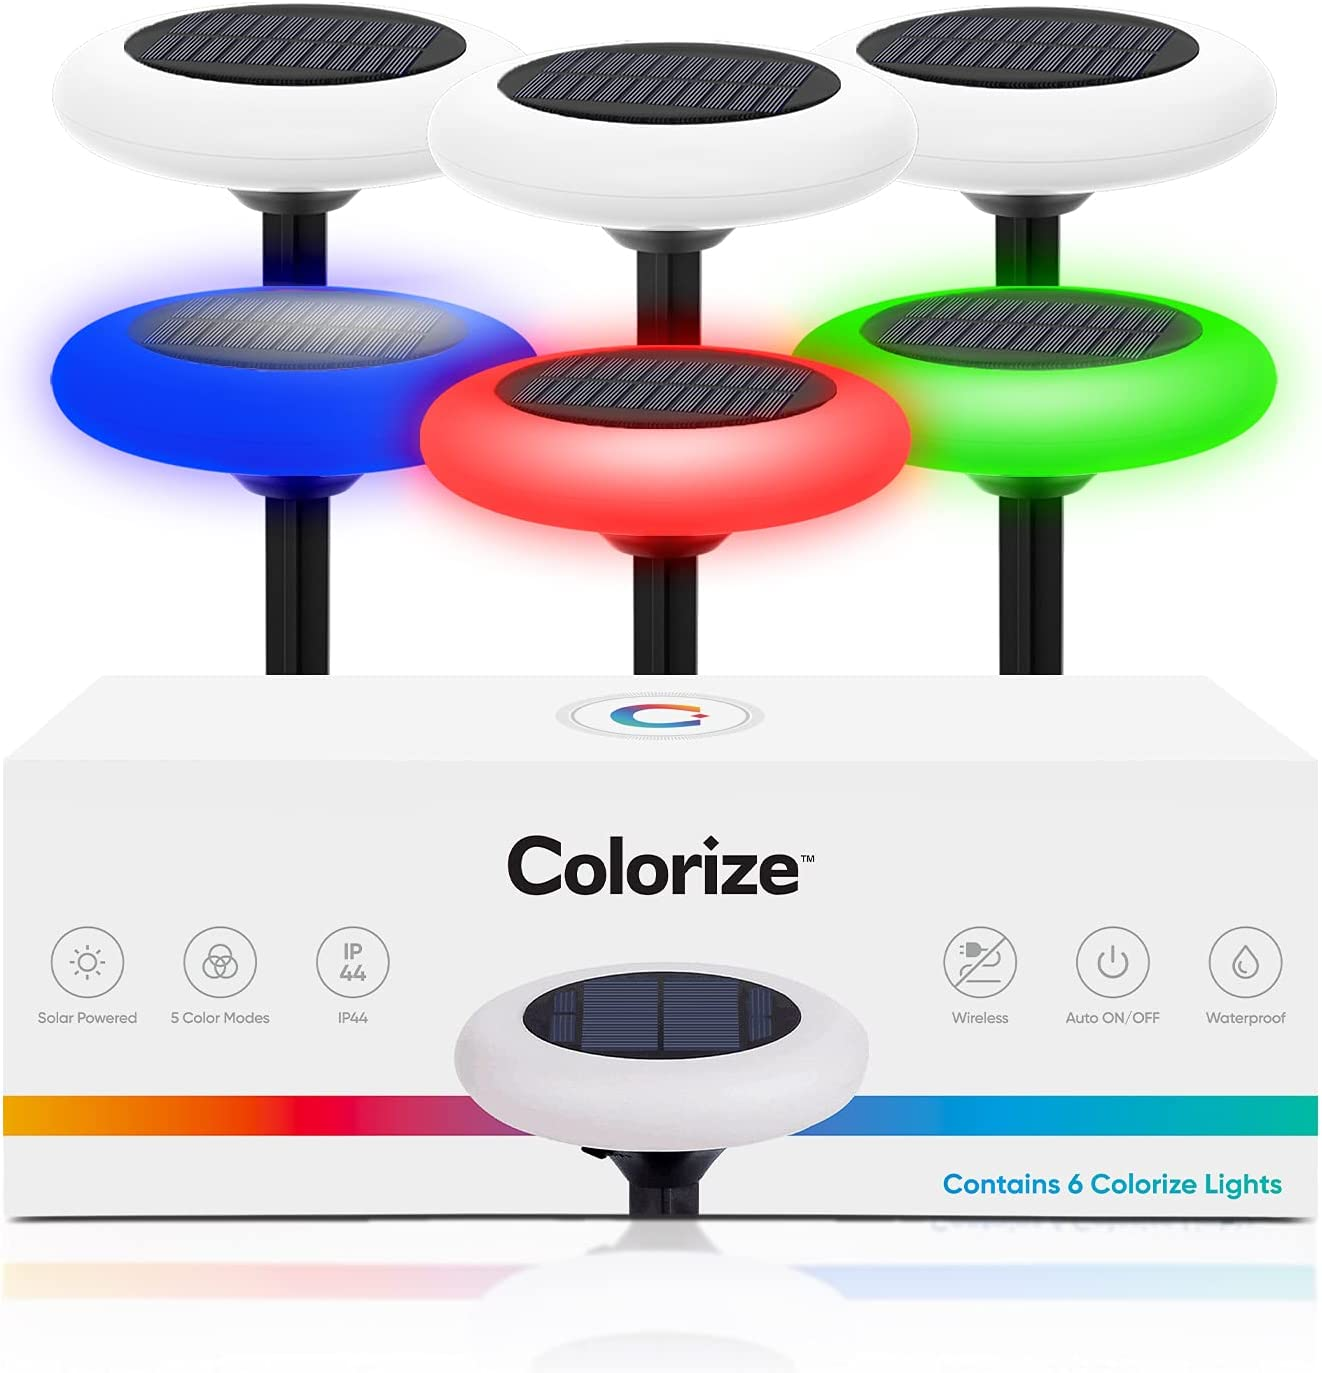 Colorize Colorful Pathway Solar Light (6 Lights) Decorative Weatherproof Auto On/Off Outdoor Lights: Garden, Landscape, Patio, Pool, Yard